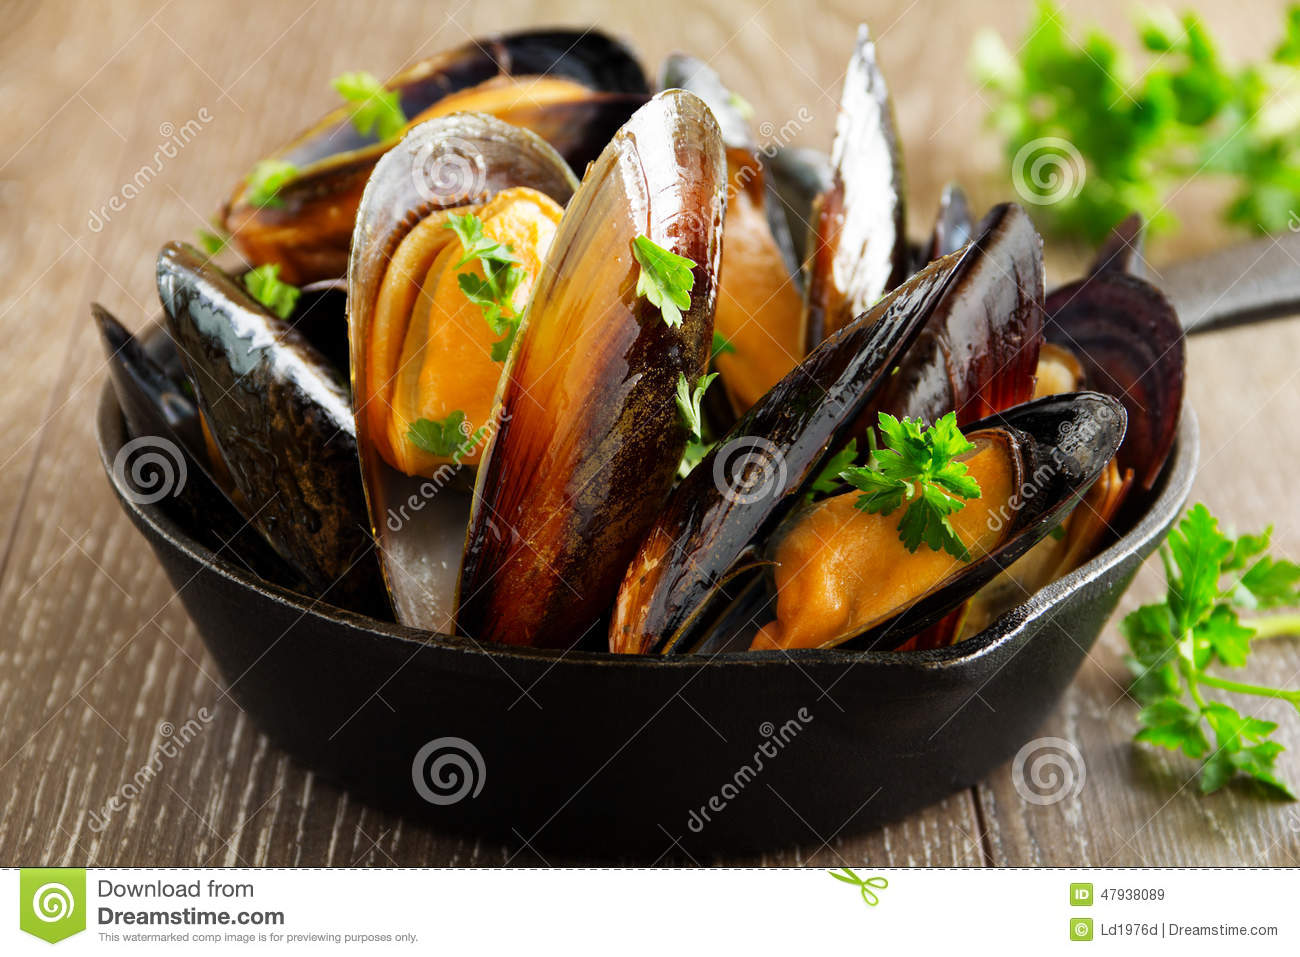 Mussels cooked in wine